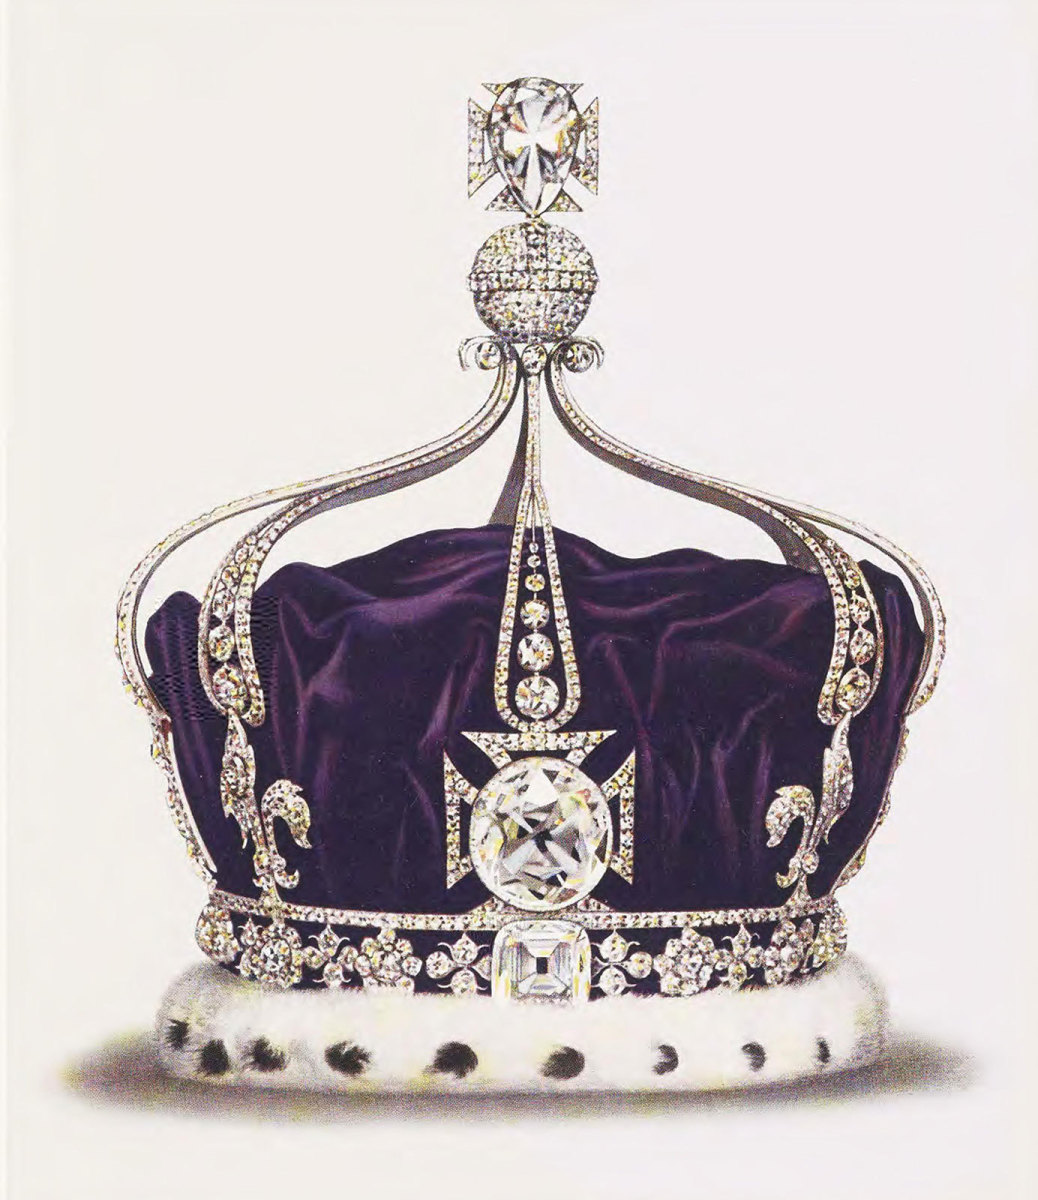 The story of Koh-i-Noor